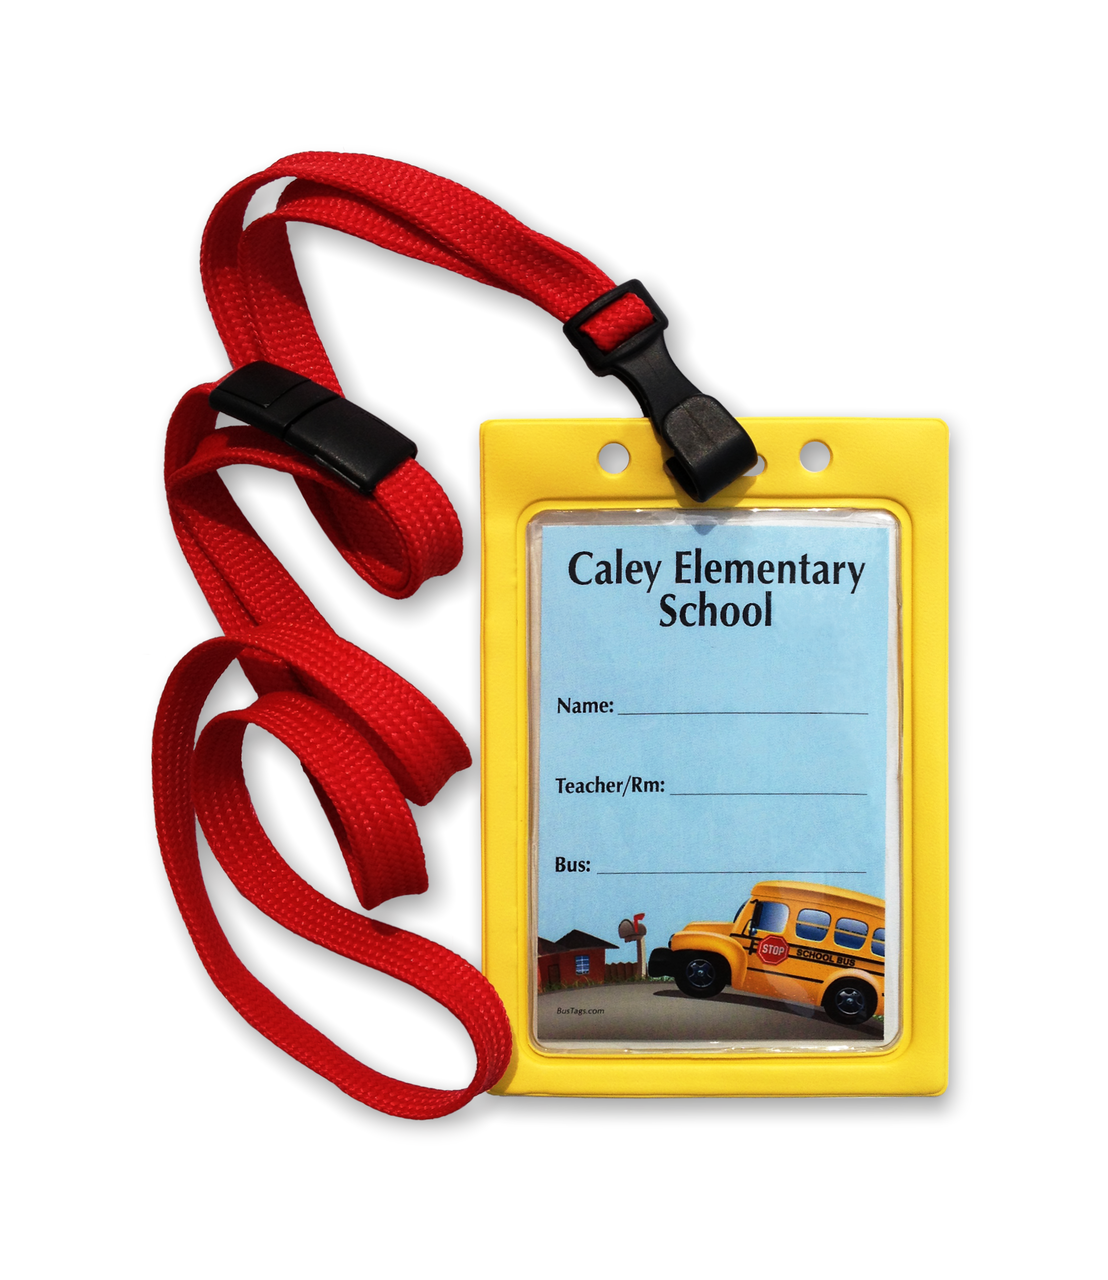 Optional breakaway lanyard!